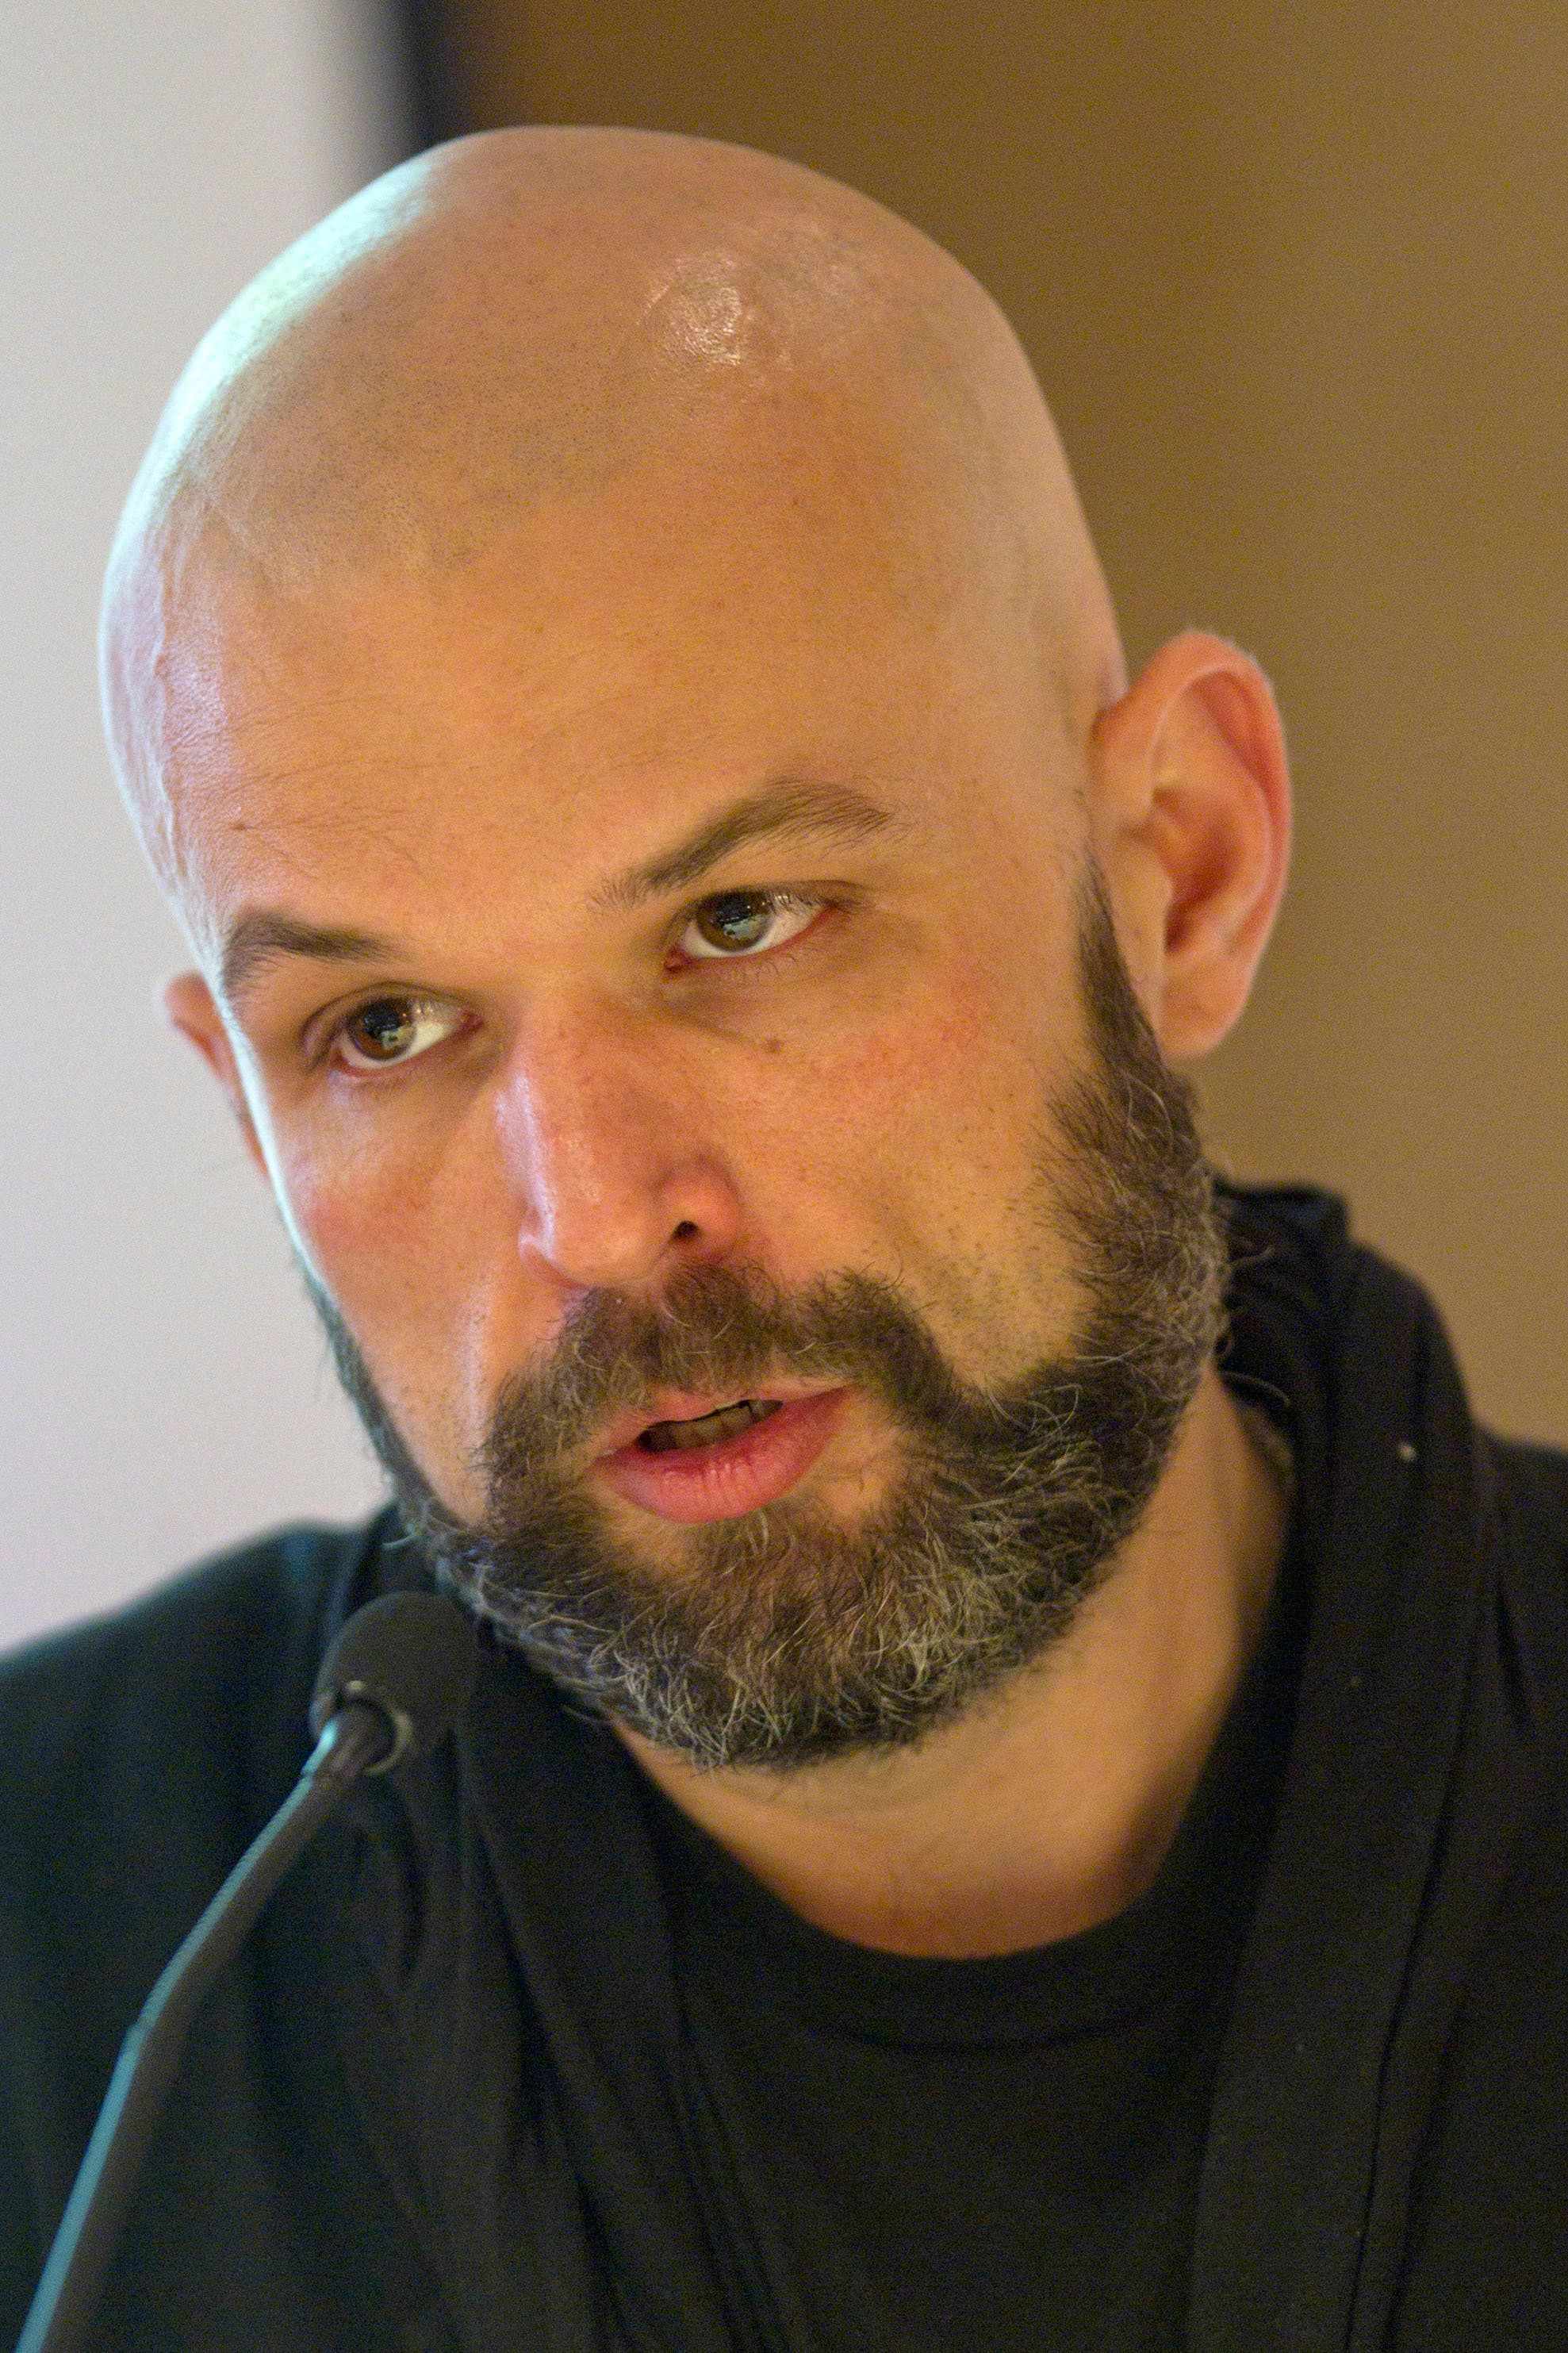 The Atlantic's Kevin D. Williamson, formerly of National Review, pictured here in 2010.